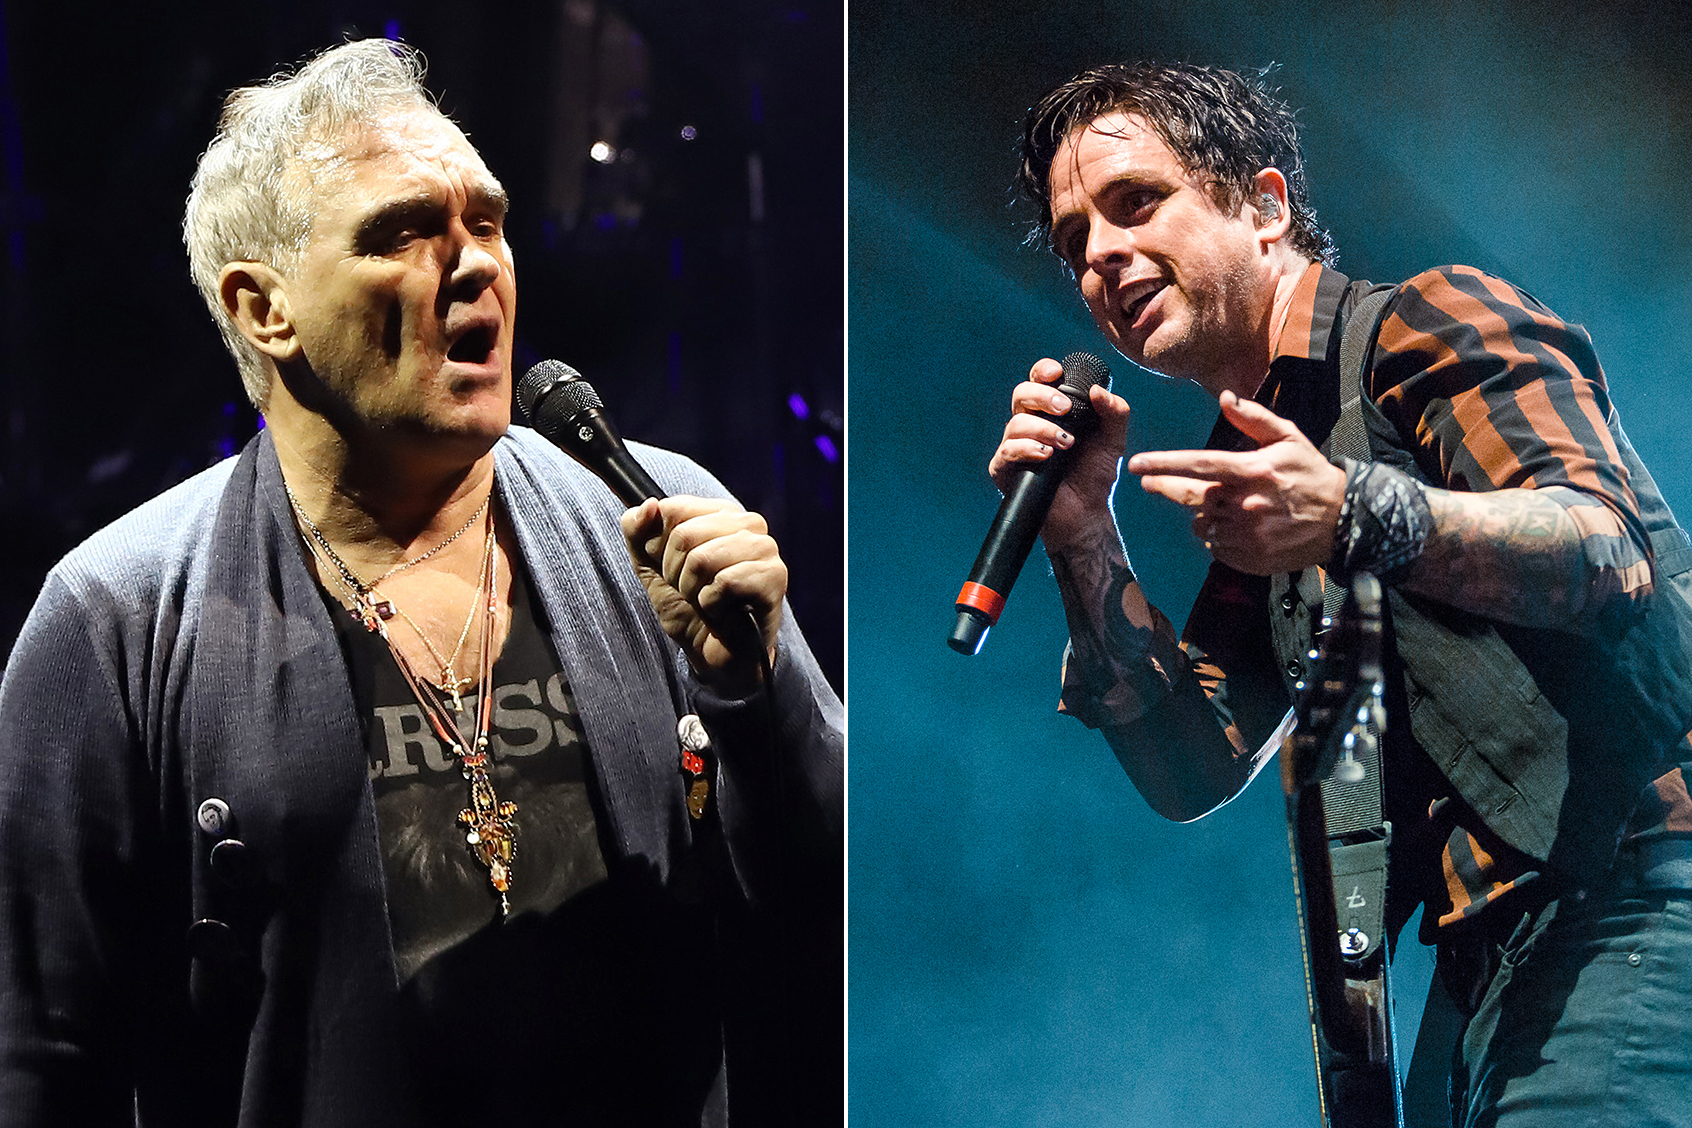 Hear Morrissey S New Song With Green Day Billie Joe Armstrong Rolling Stone